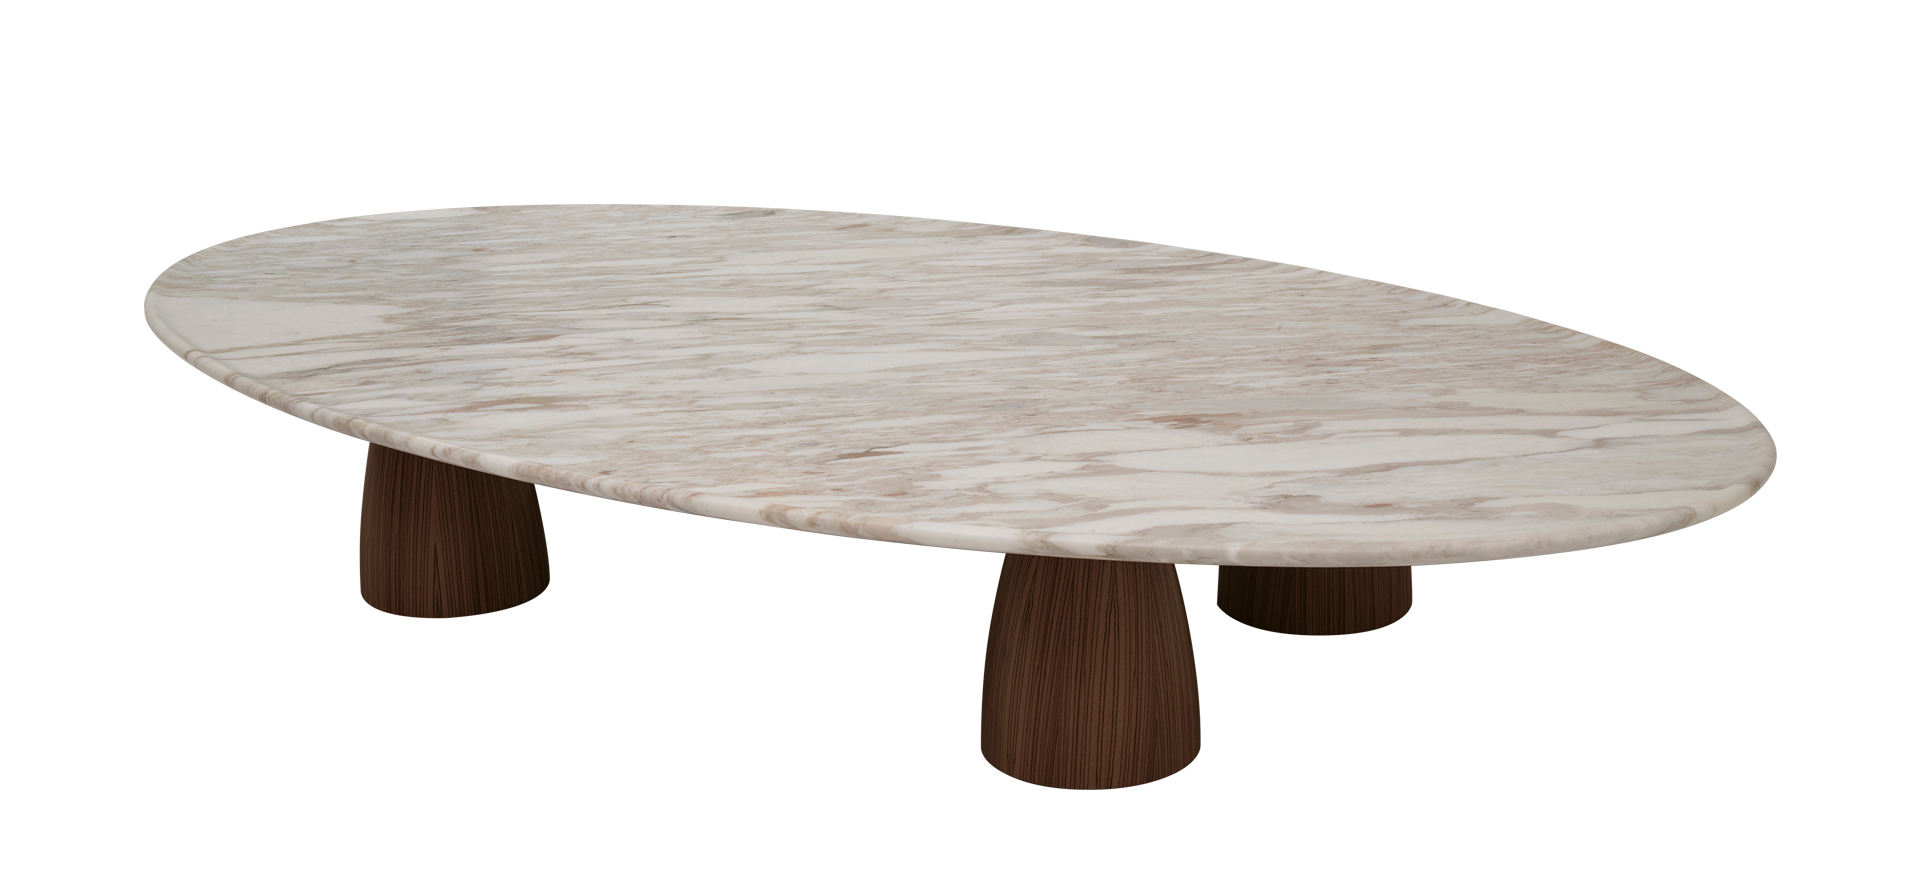 Promemoria  Lunique: Coffee Table in Wood and Calacatta Gold Marble